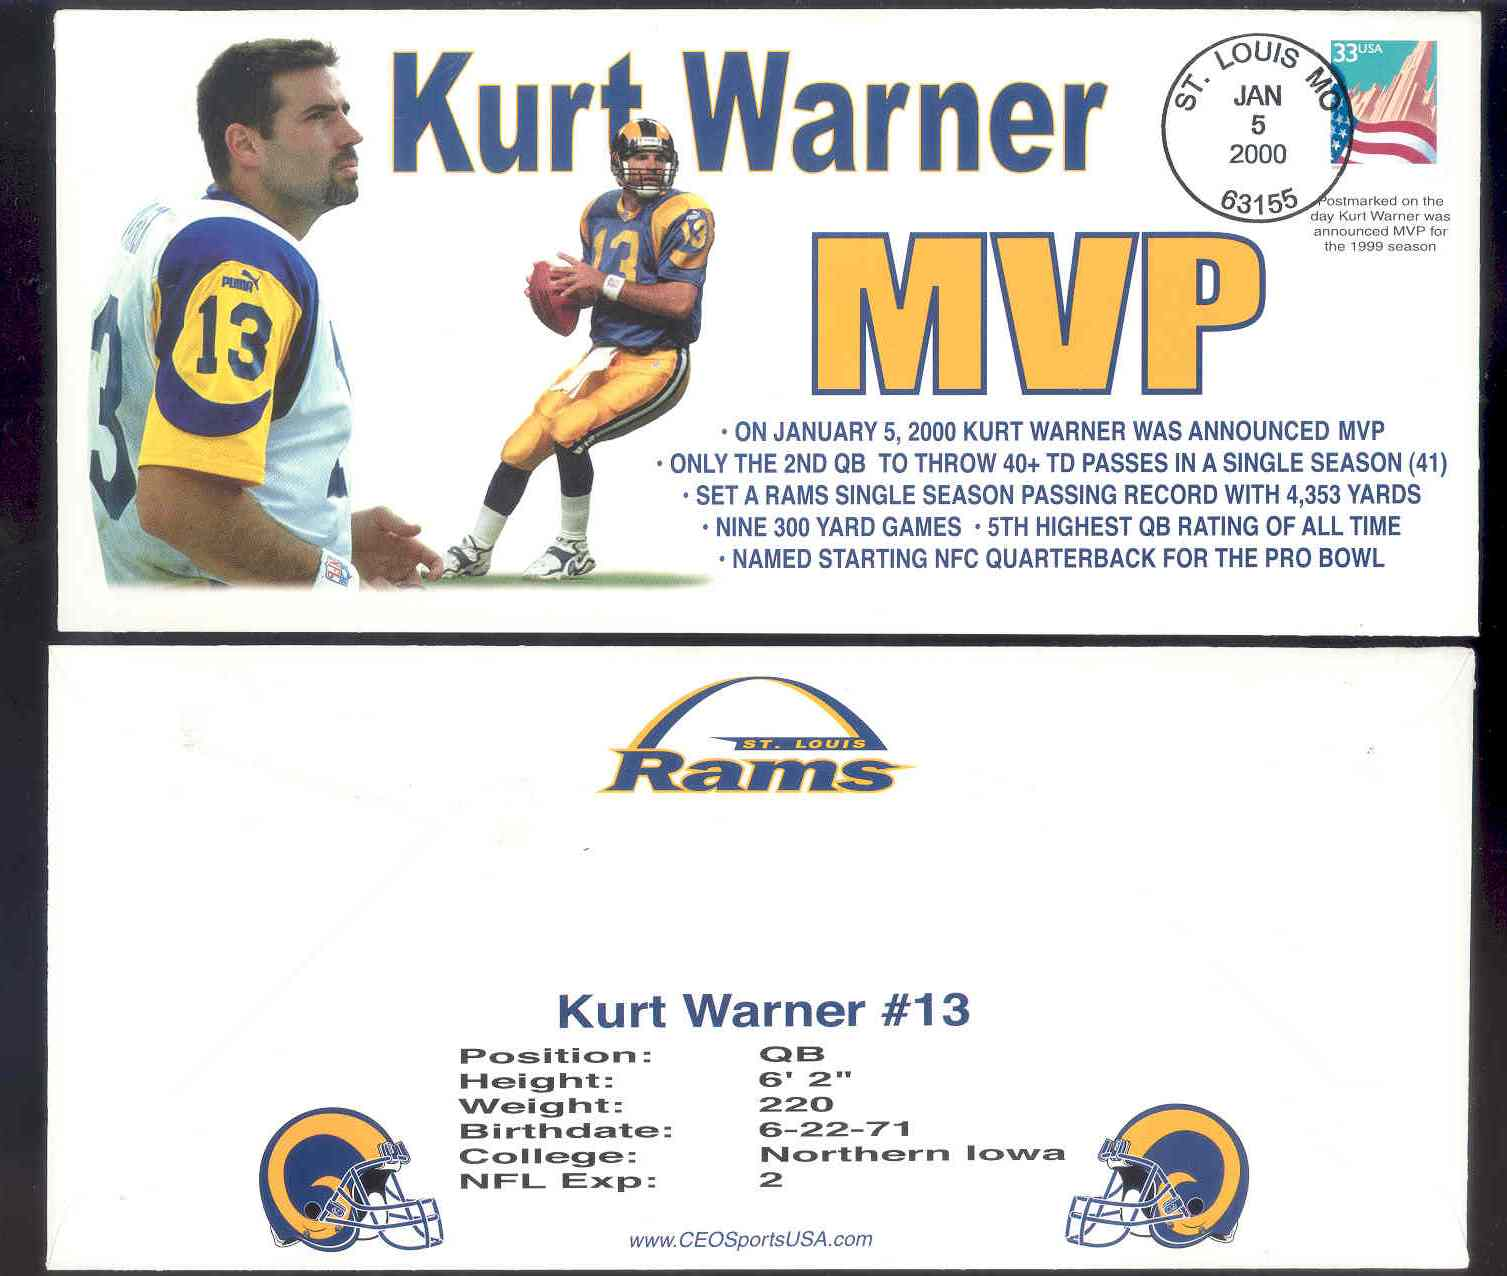 1999-2000 First Day Rookie Cover Kurt Warner Collectible Envelope Postmarked Jan 5 2000 on the Day he was annouced MVP